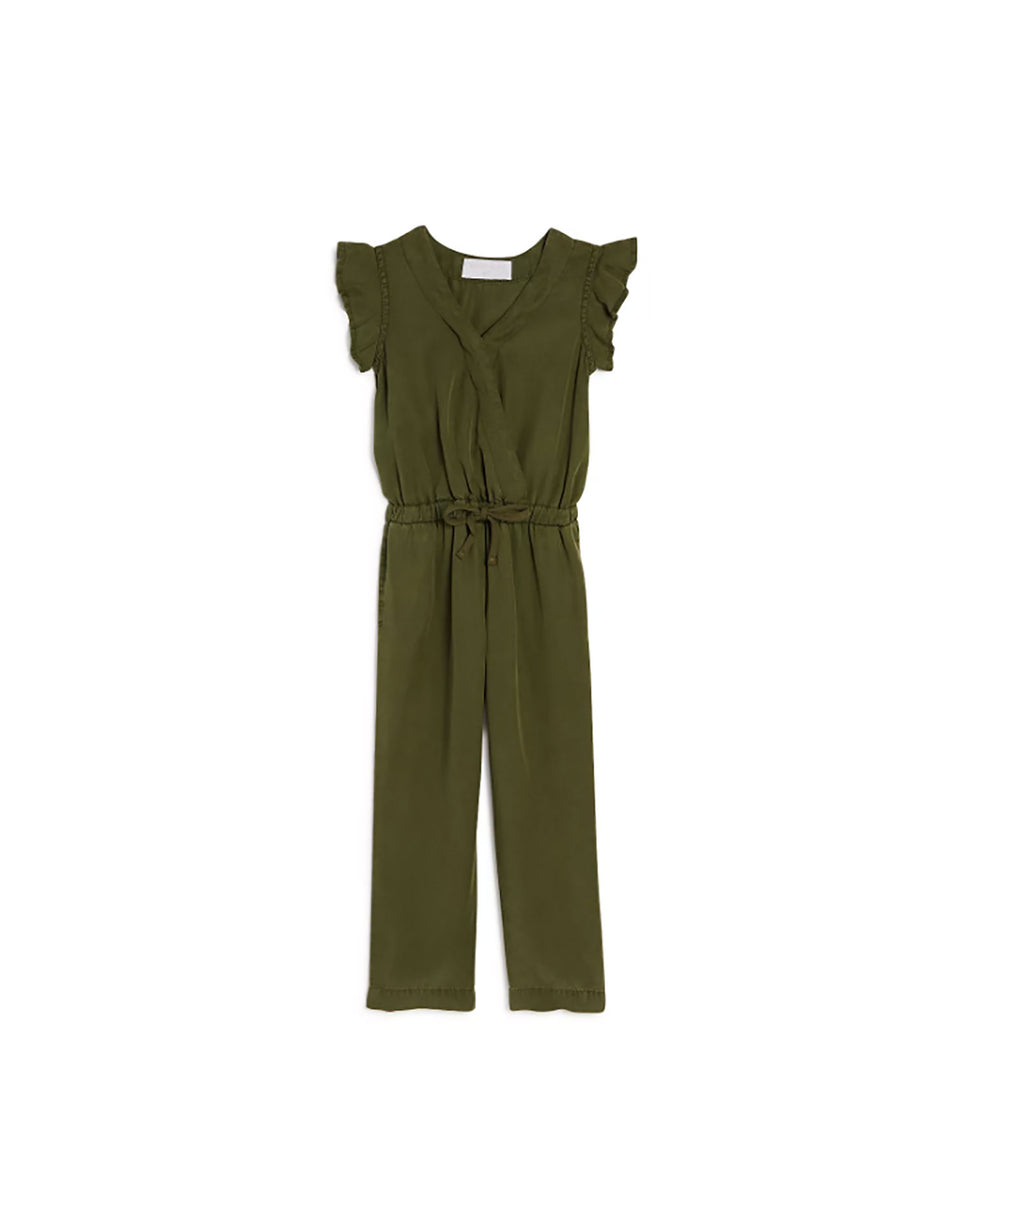 Bella Dahl Girls Ruffle Jumpsuit